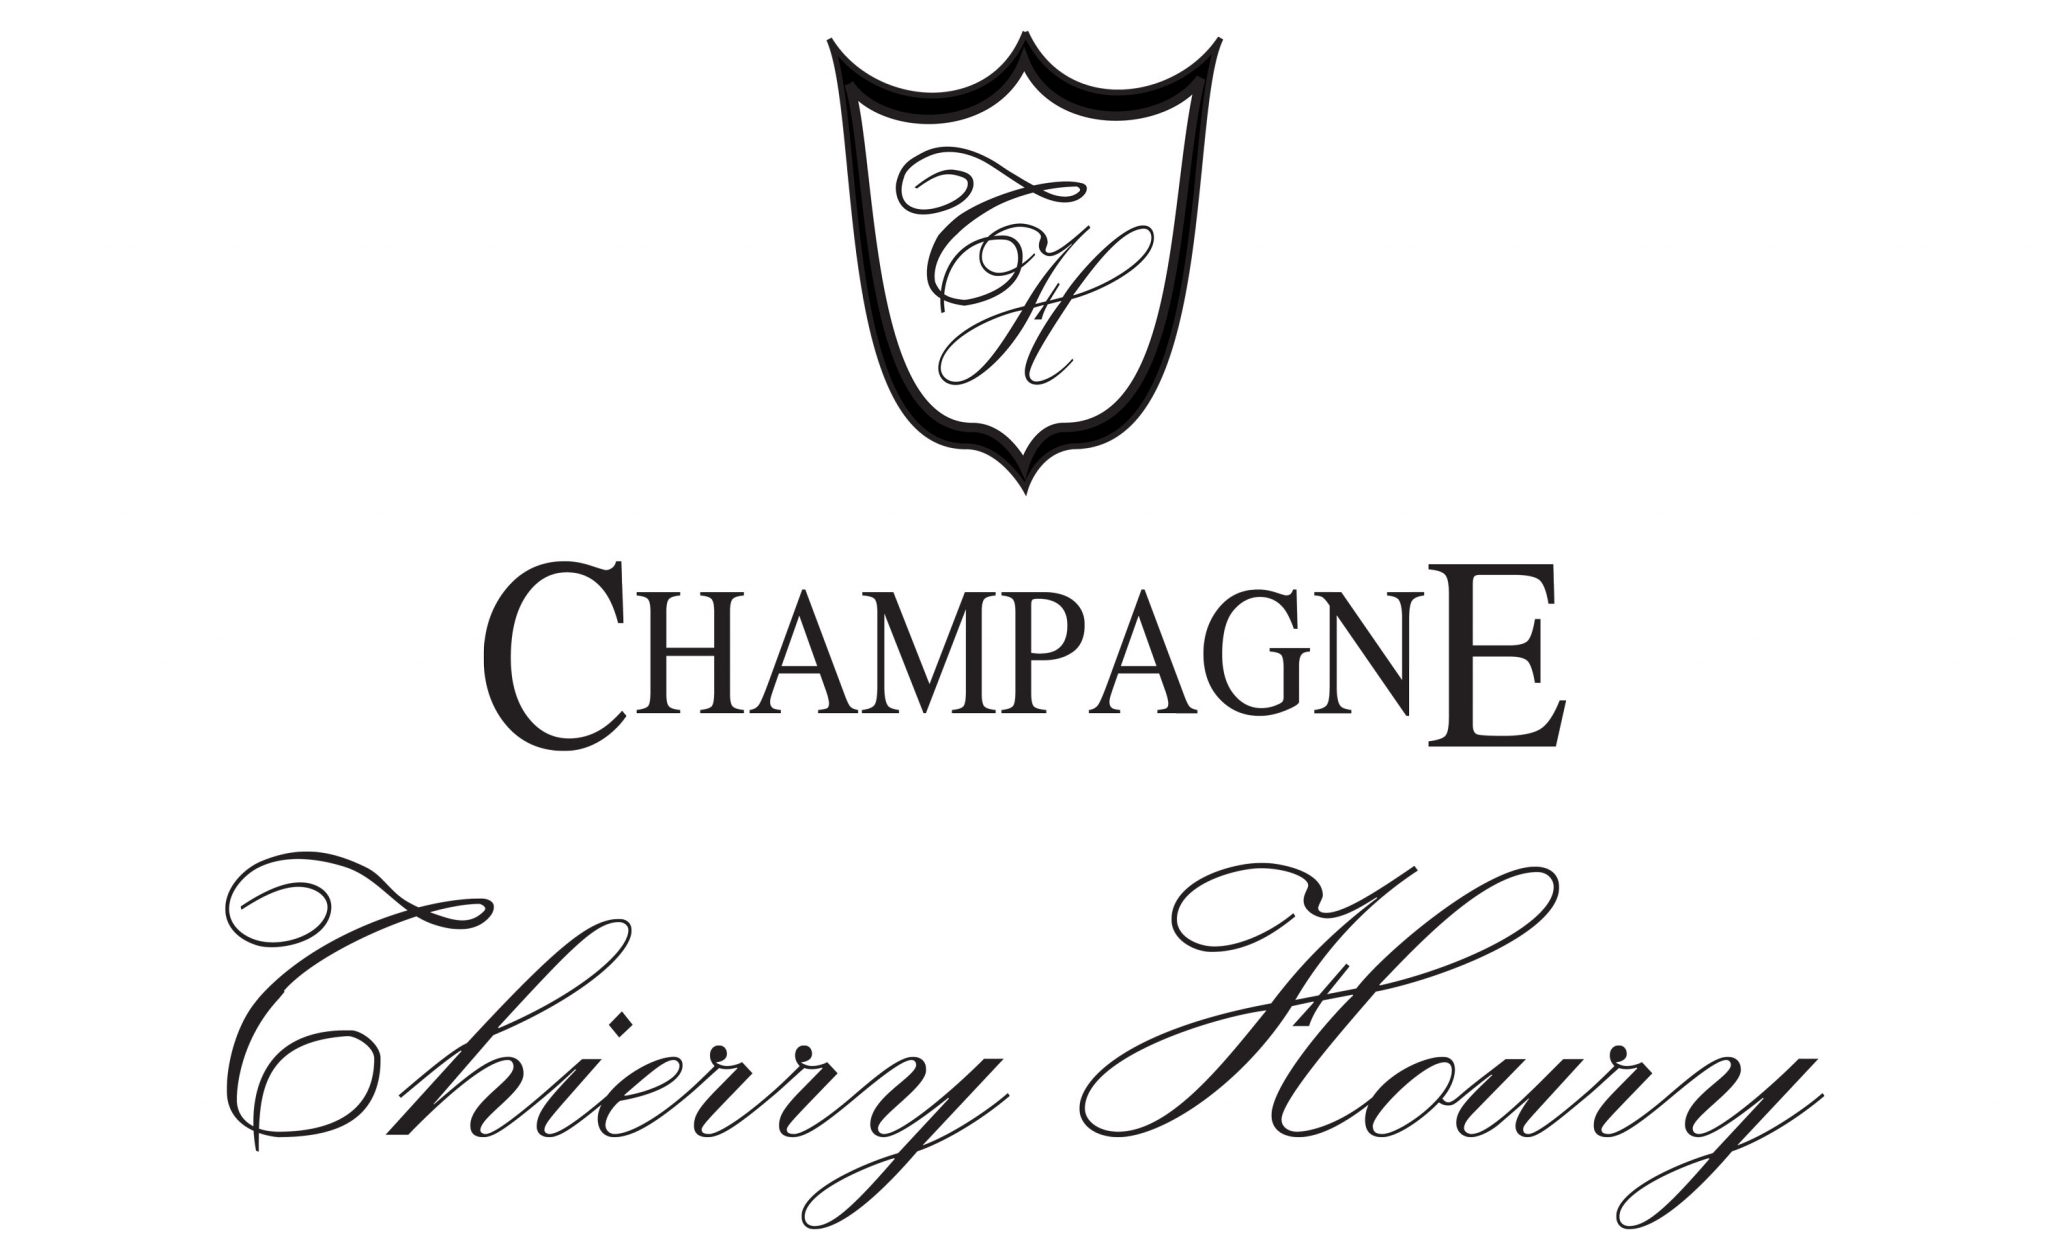 Champagne Thierry Houry